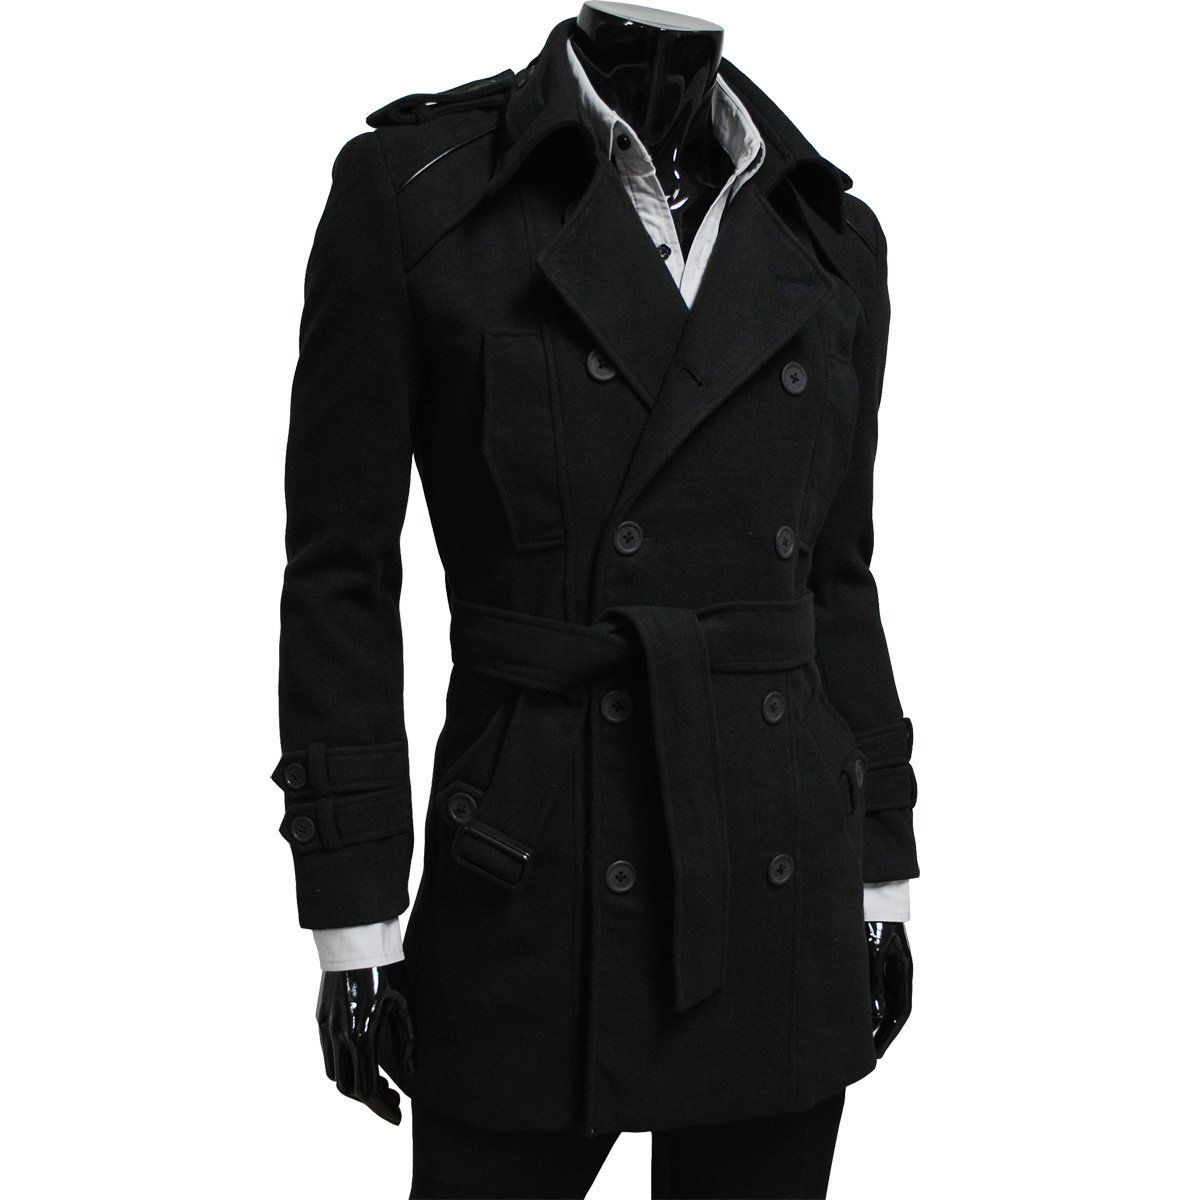 Black trench coat, trench coats for men, leather trench coat ...